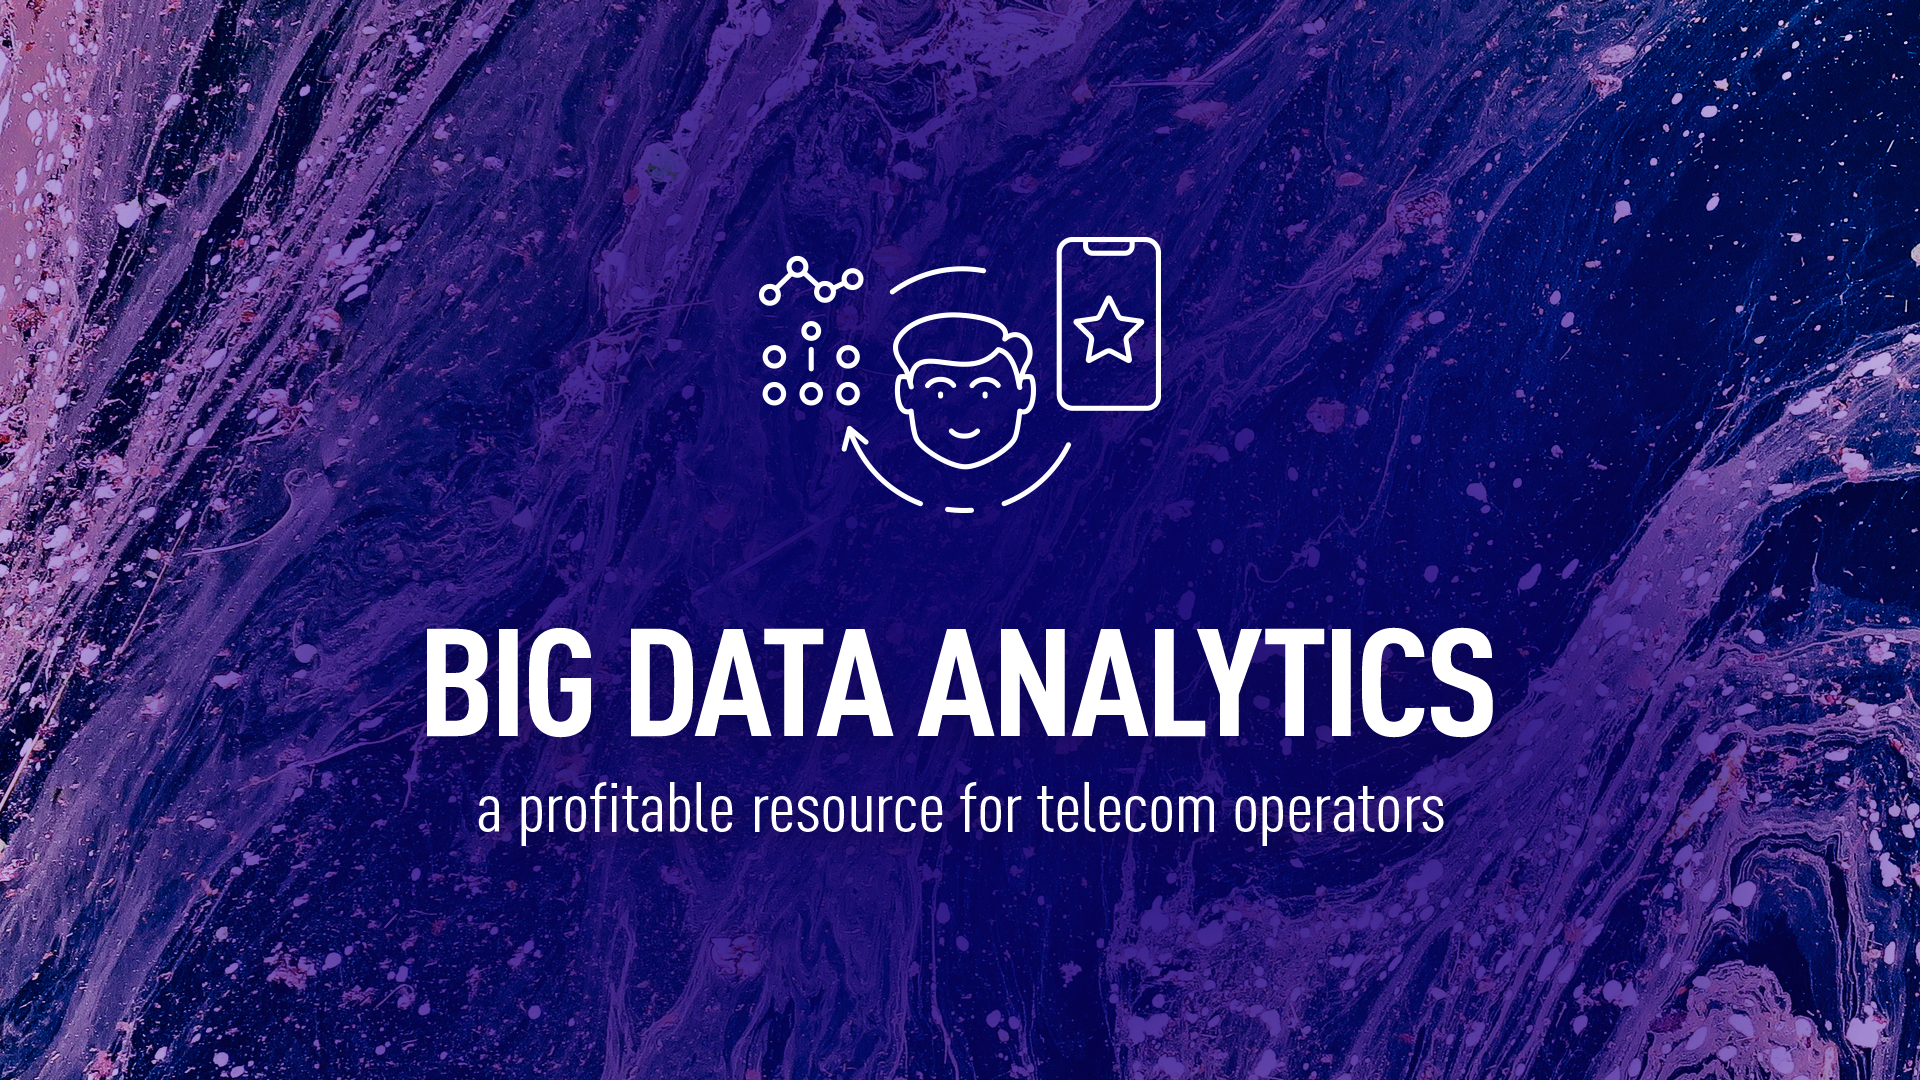 Big Data Analytics solutions - a profitable resource for telecom operators